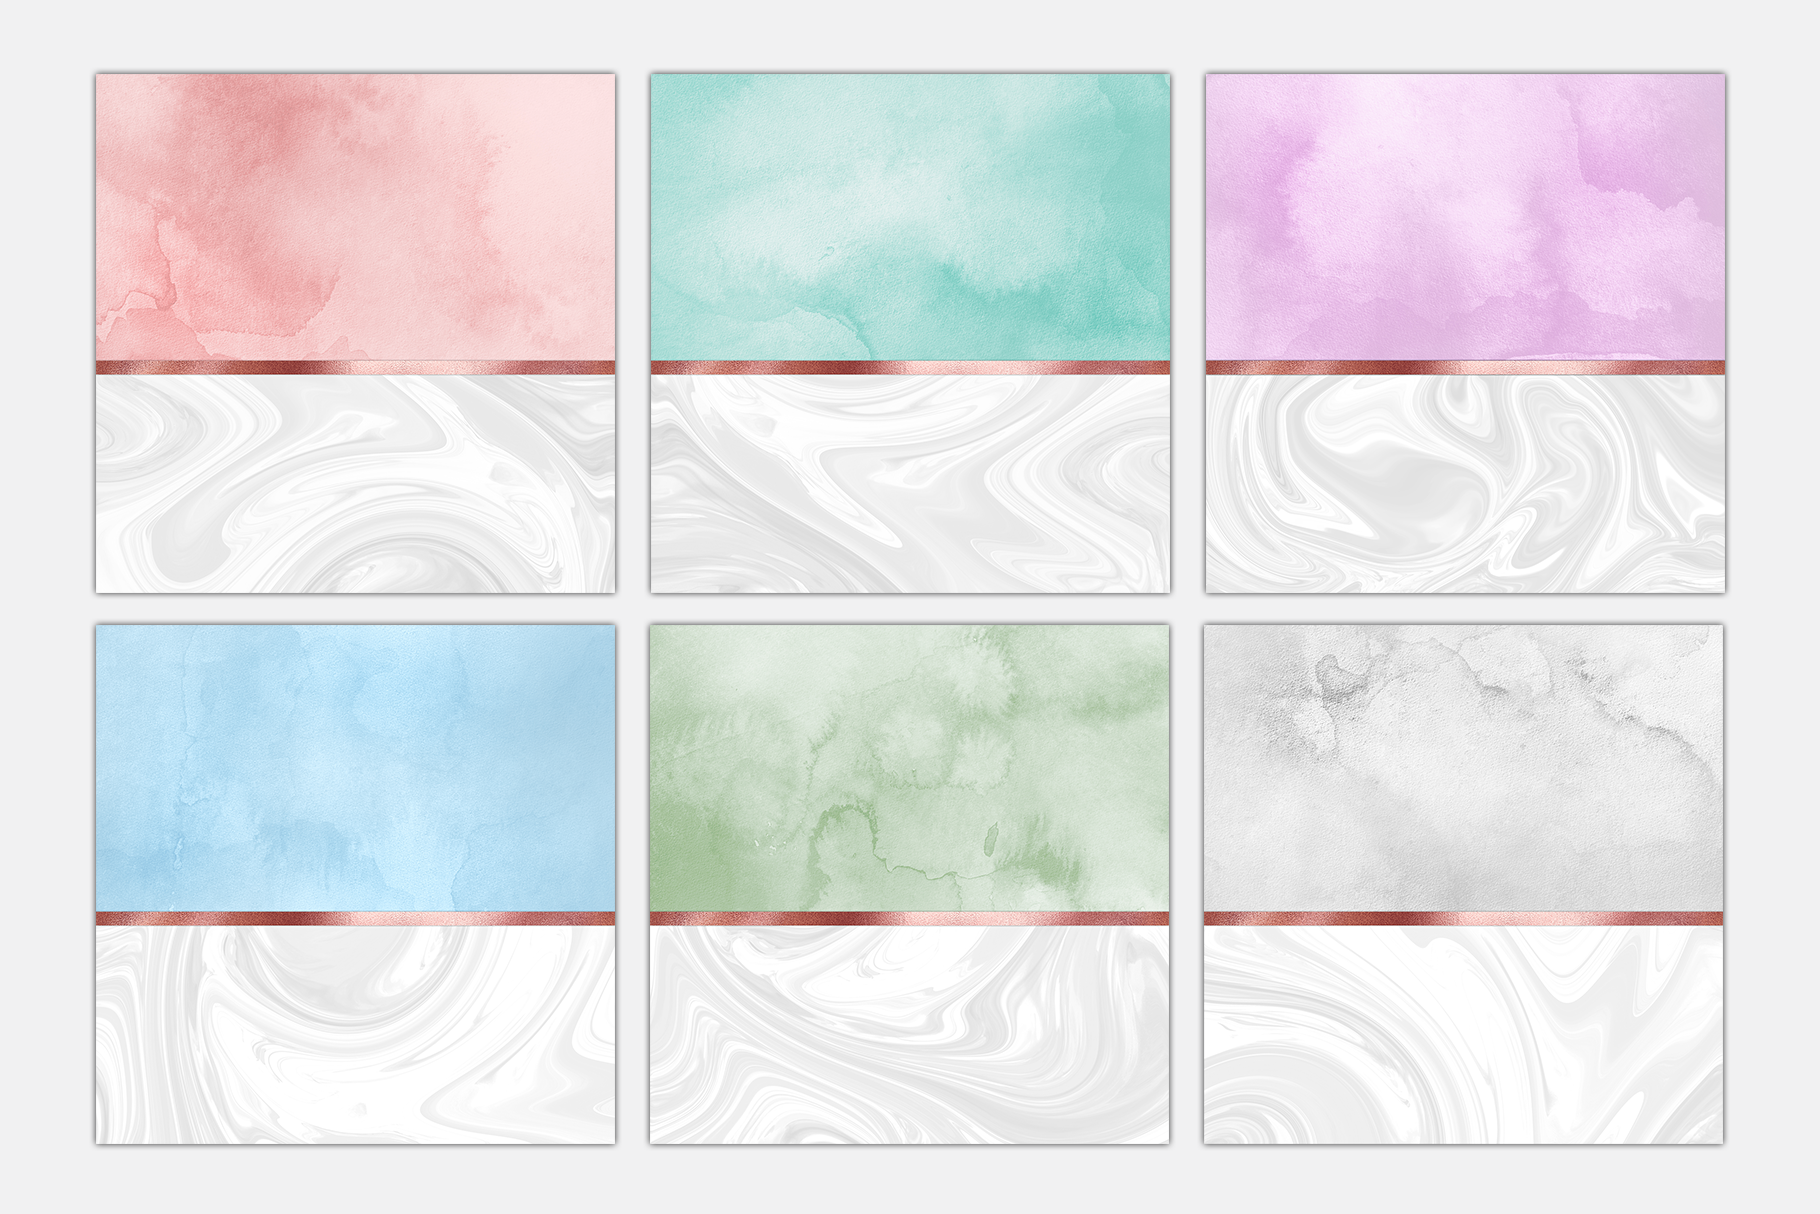 Pastel Marble Watercolor Rose Gold Foil Textures | 6 Pack example image 2